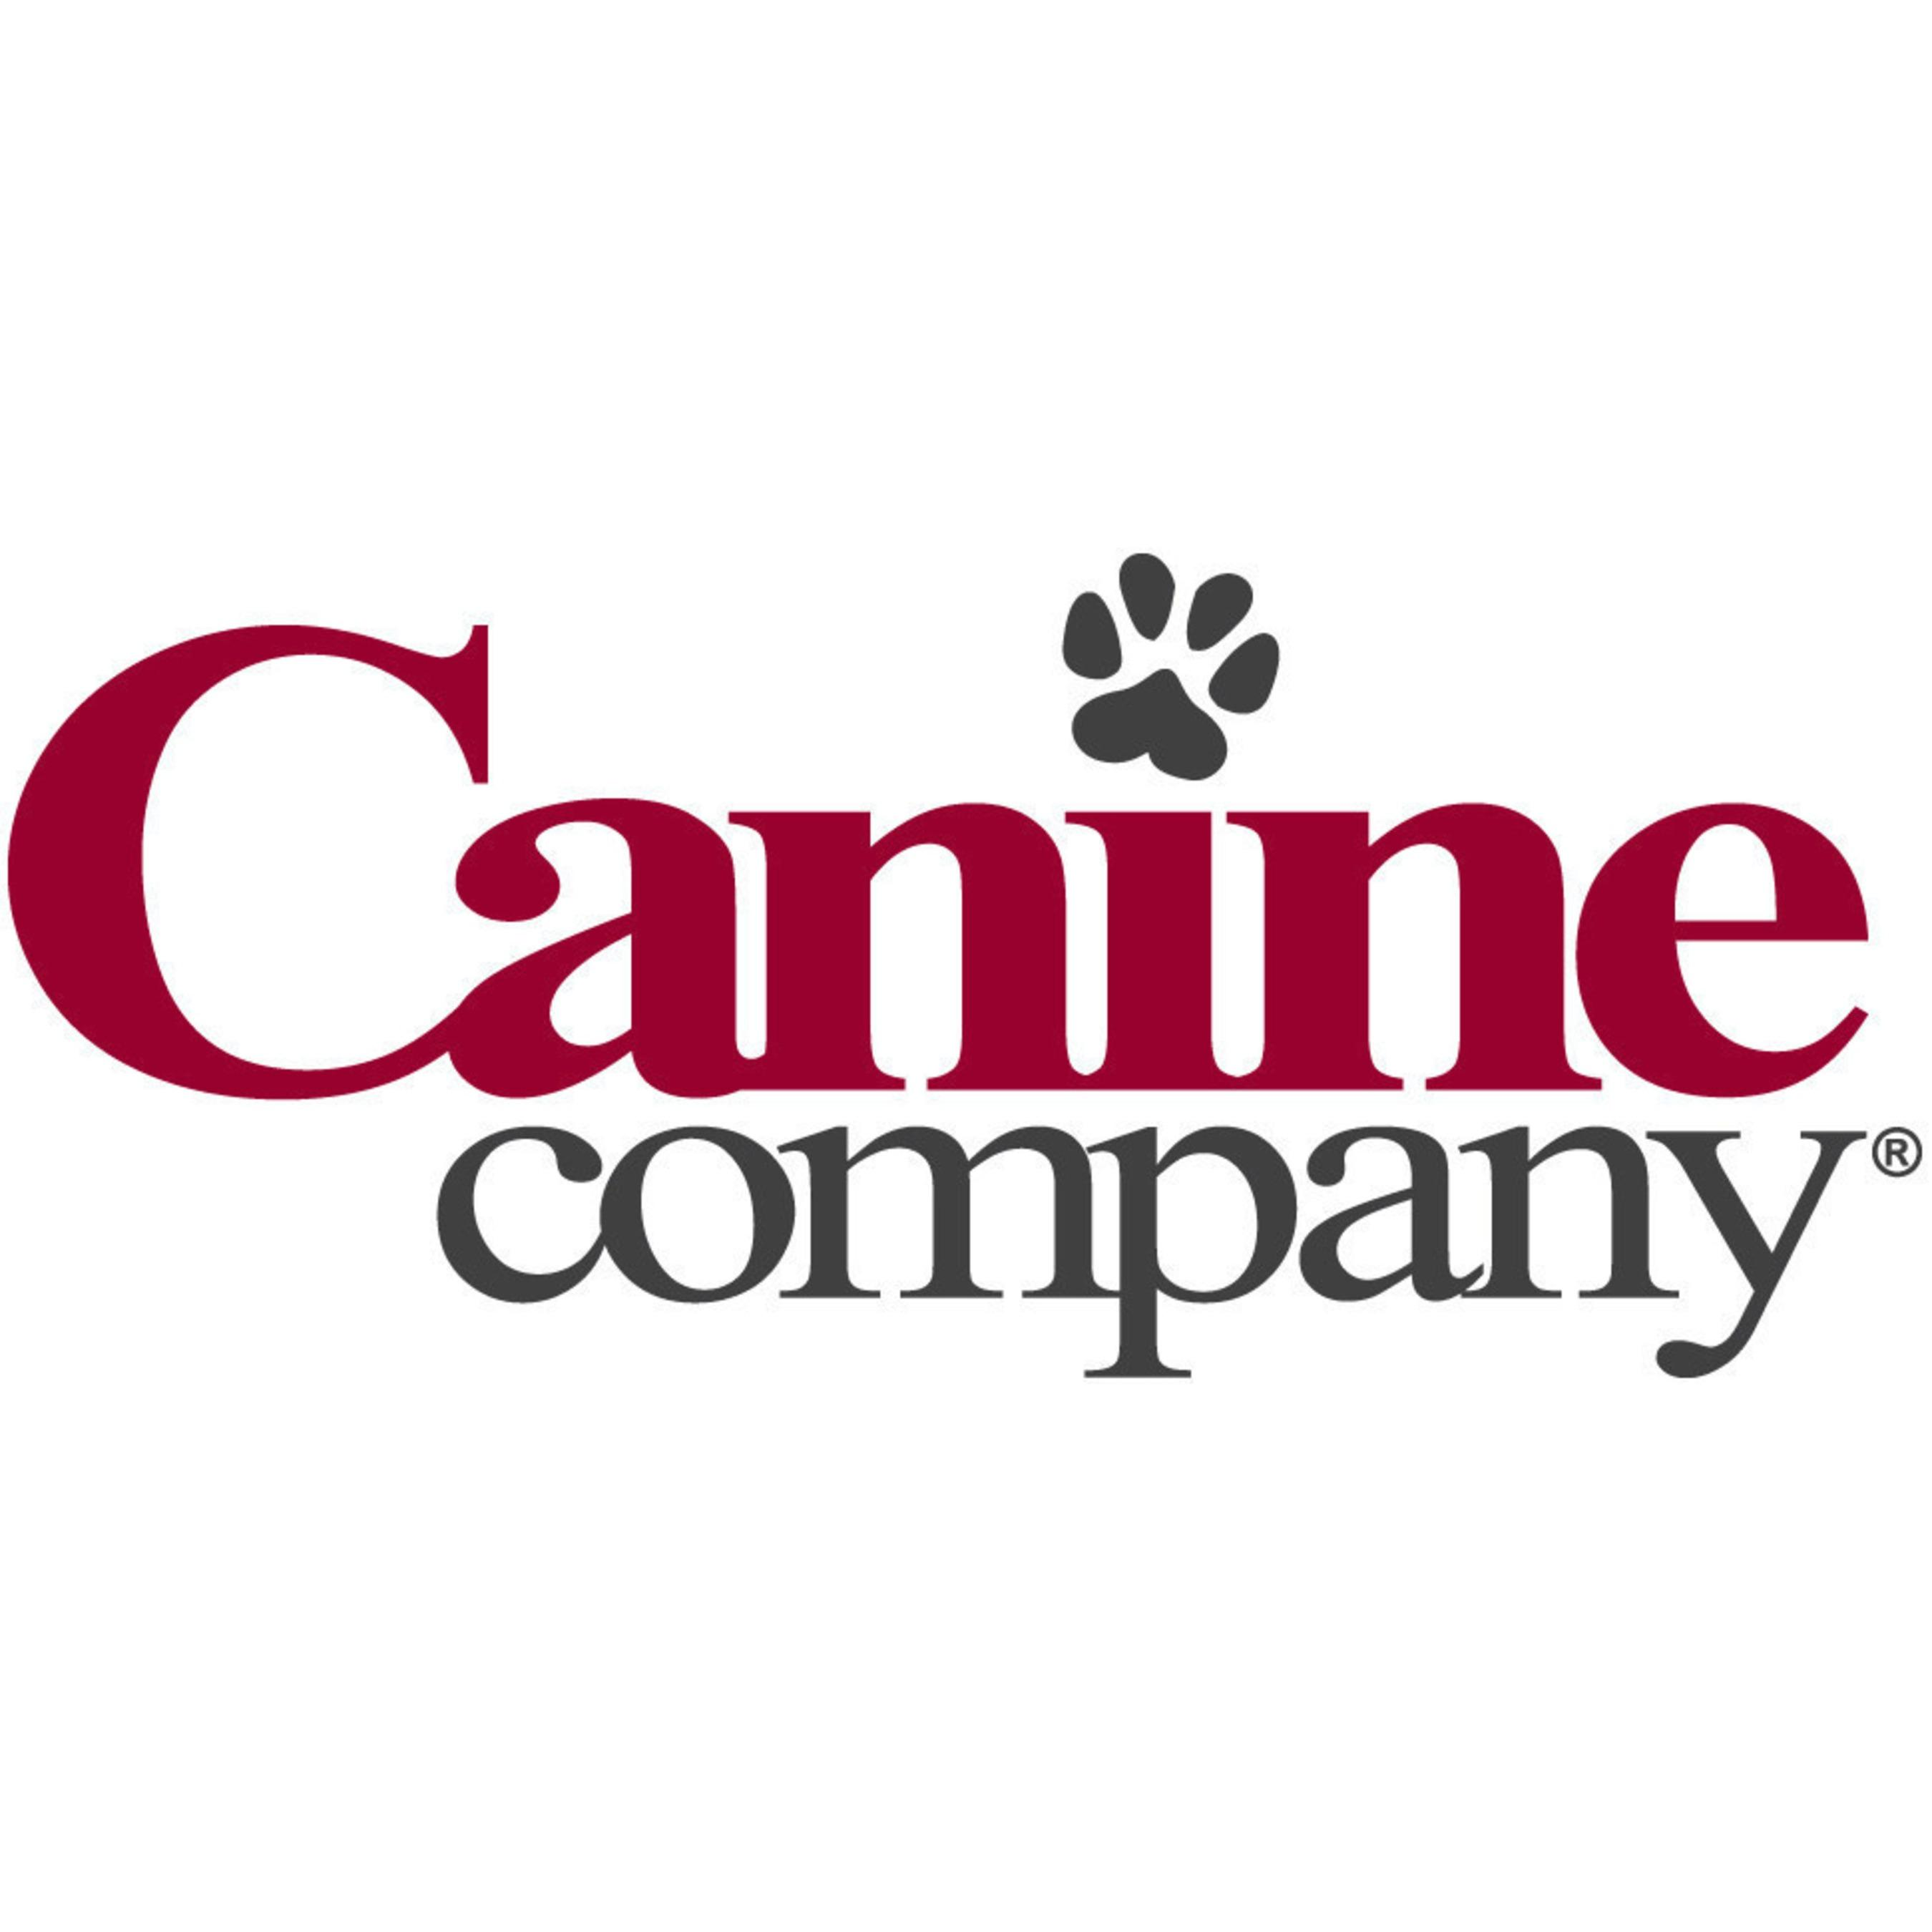 Canine Company - Mercerville, NJ 08619 - (609)807-2066 | ShowMeLocal.com